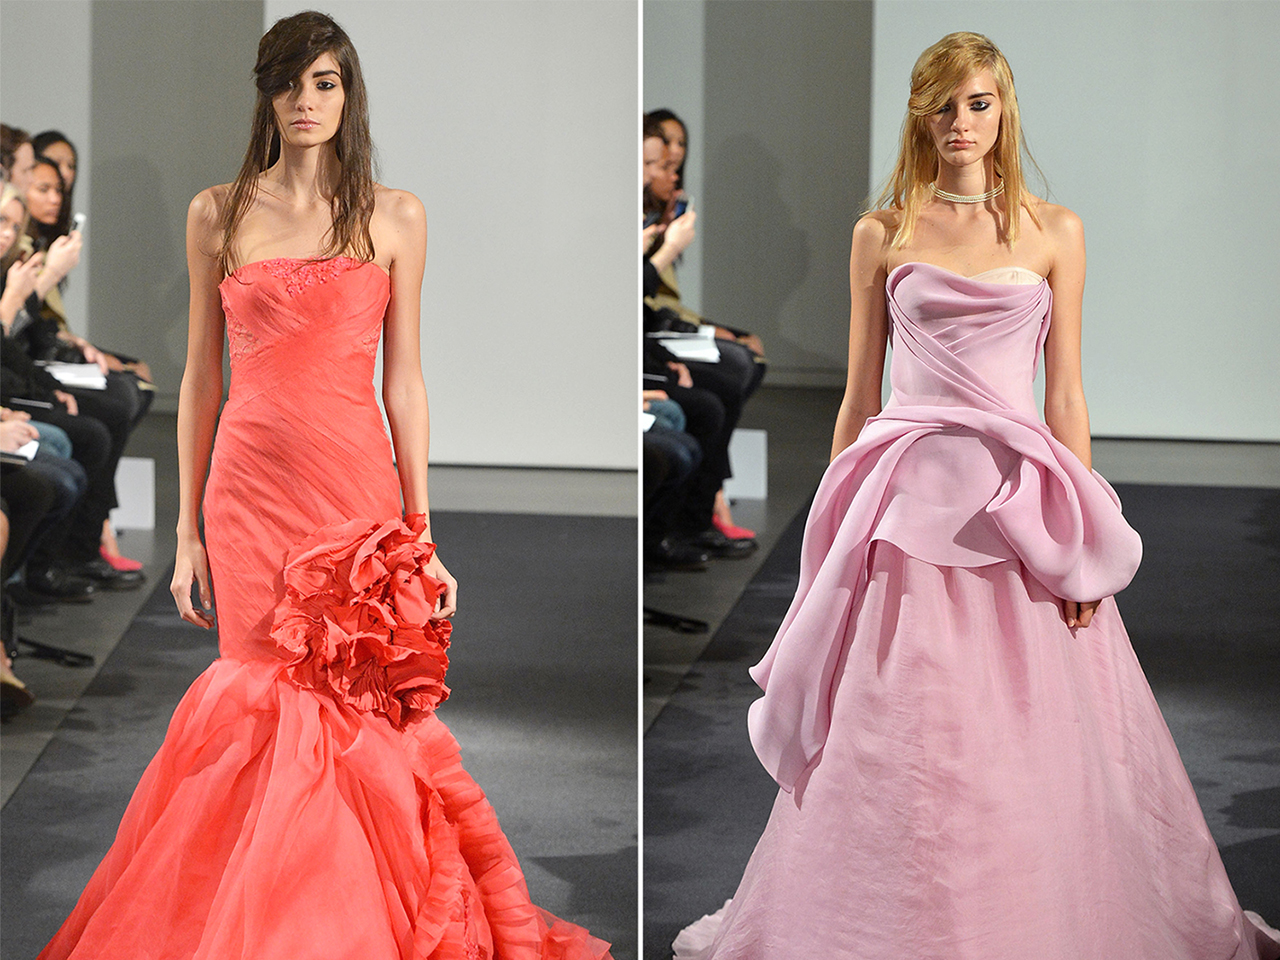 Nice day for a pink wedding? Vera Wang debuts colorful bridal collection